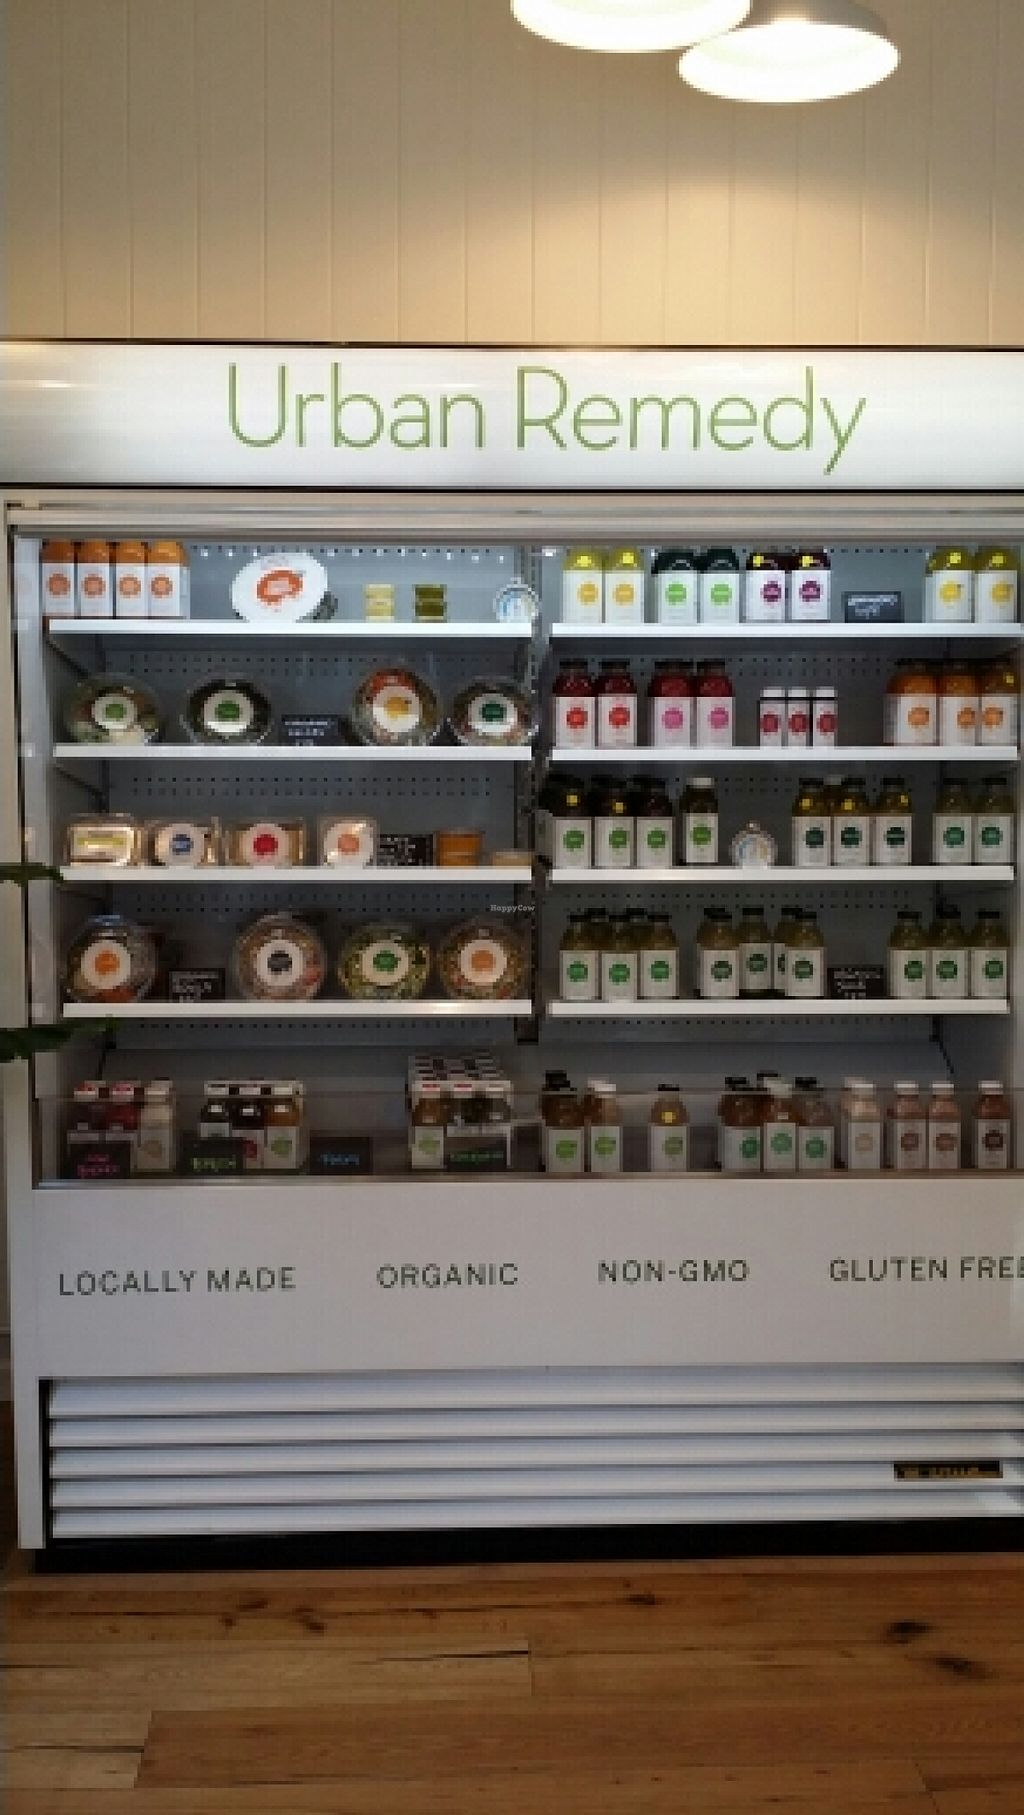 "Photo of Urban Remedy  by <a href=""/members/profile/catbone"">catbone</a> <br/>A Larger Refrigerated Showcase With Juices And Other Edibles <br/> February 24, 2016  - <a href='/contact/abuse/image/69530/137535'>Report</a>"